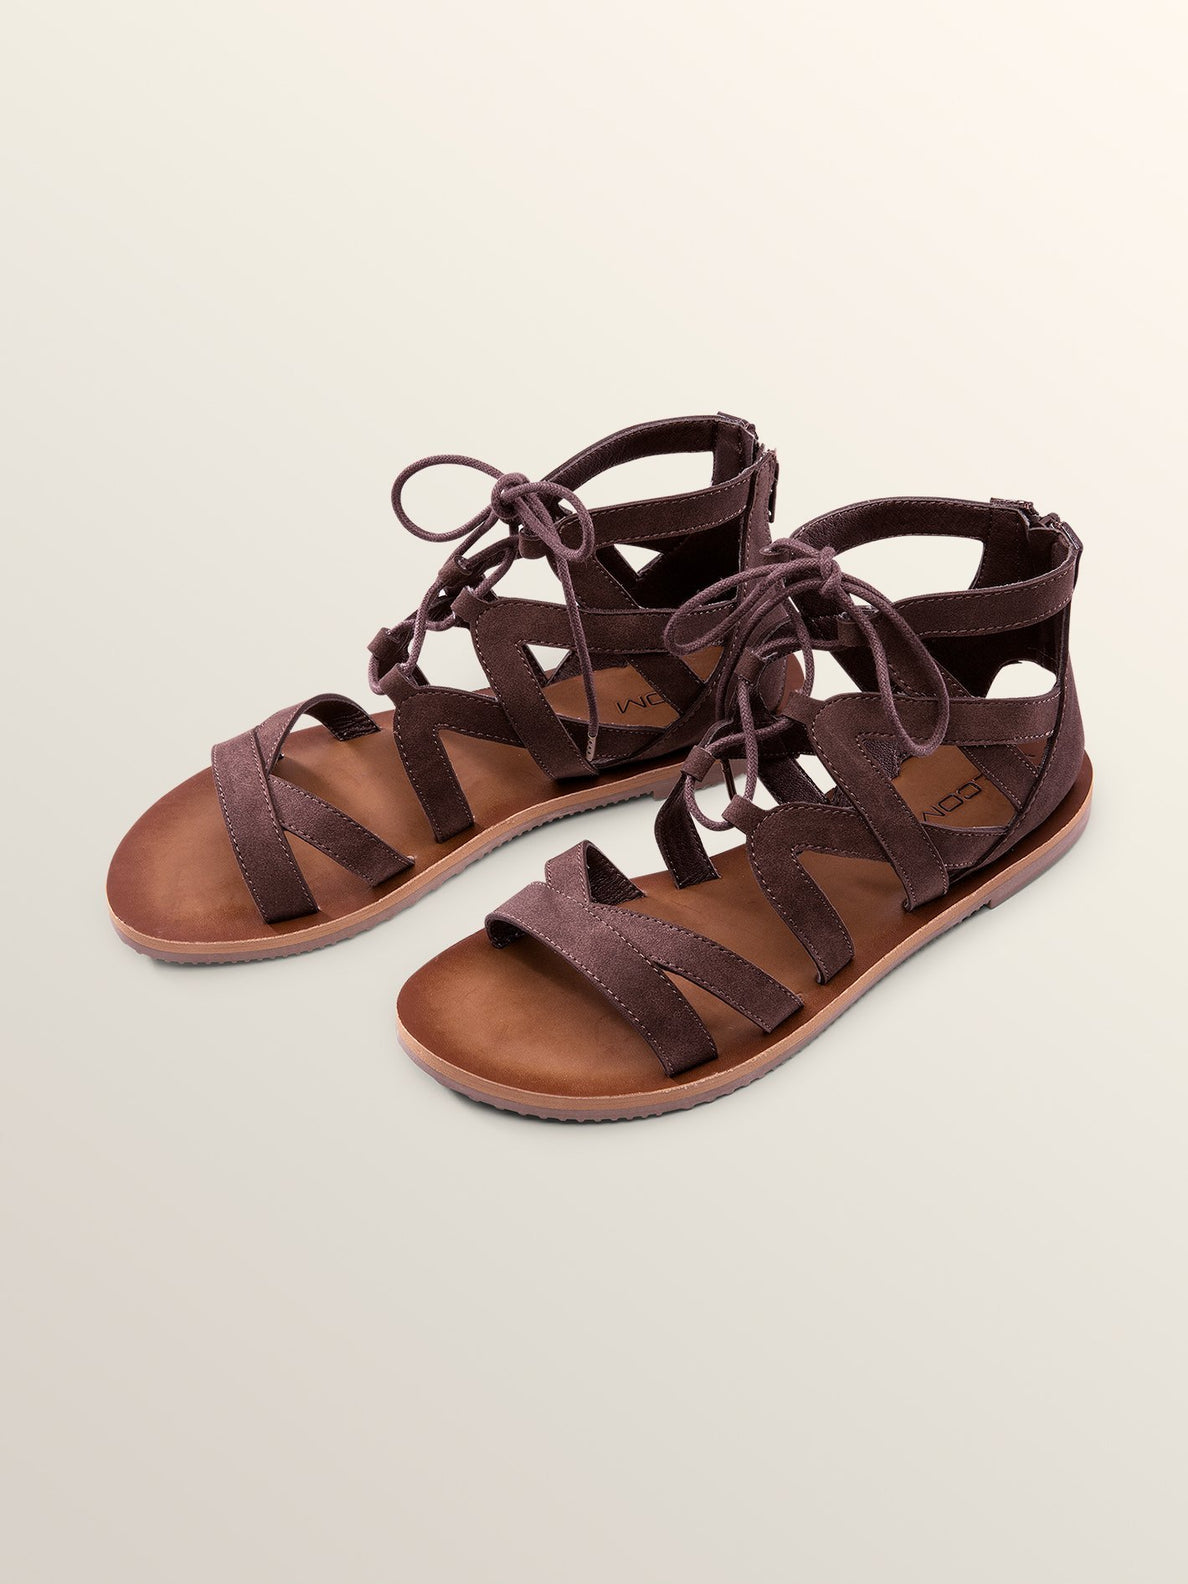 Sandals Bowie Road Brown Sandals Road Brown Bowie 8xfvaq